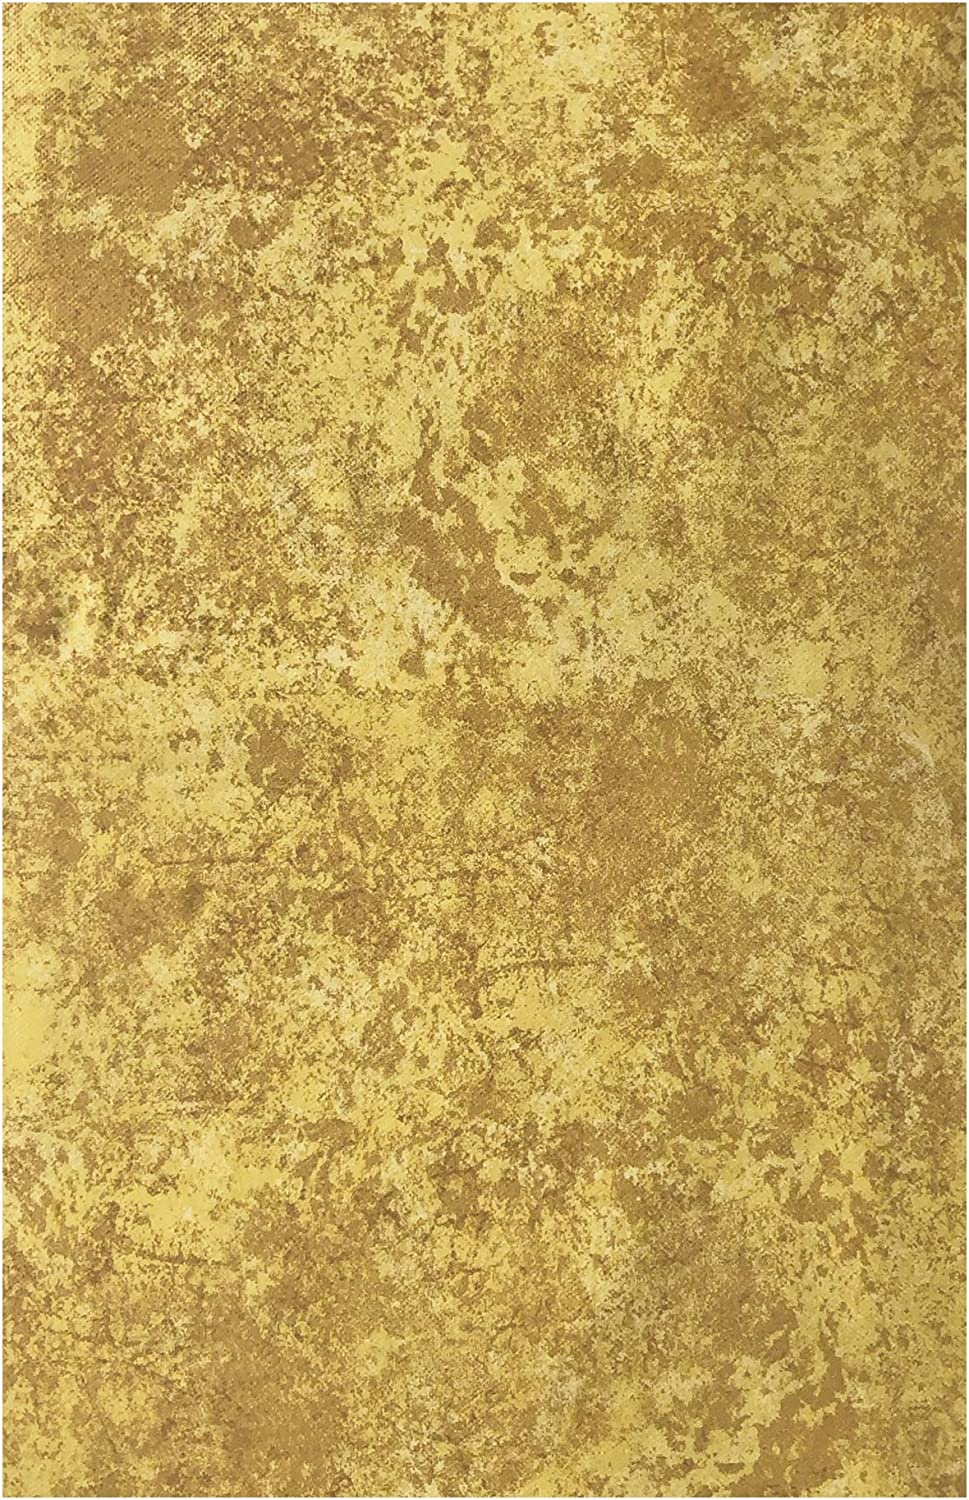 Gold Milano Marble Solid Color Print Heavy Gauge Vinyl Flannel Backed Tablecloth, Indoor/Outdoor Tablecloth for Picnic, Barbeque, Patio and Kitchen Dining, (60 Inch x 120 Inch Oblong/Rectangle)